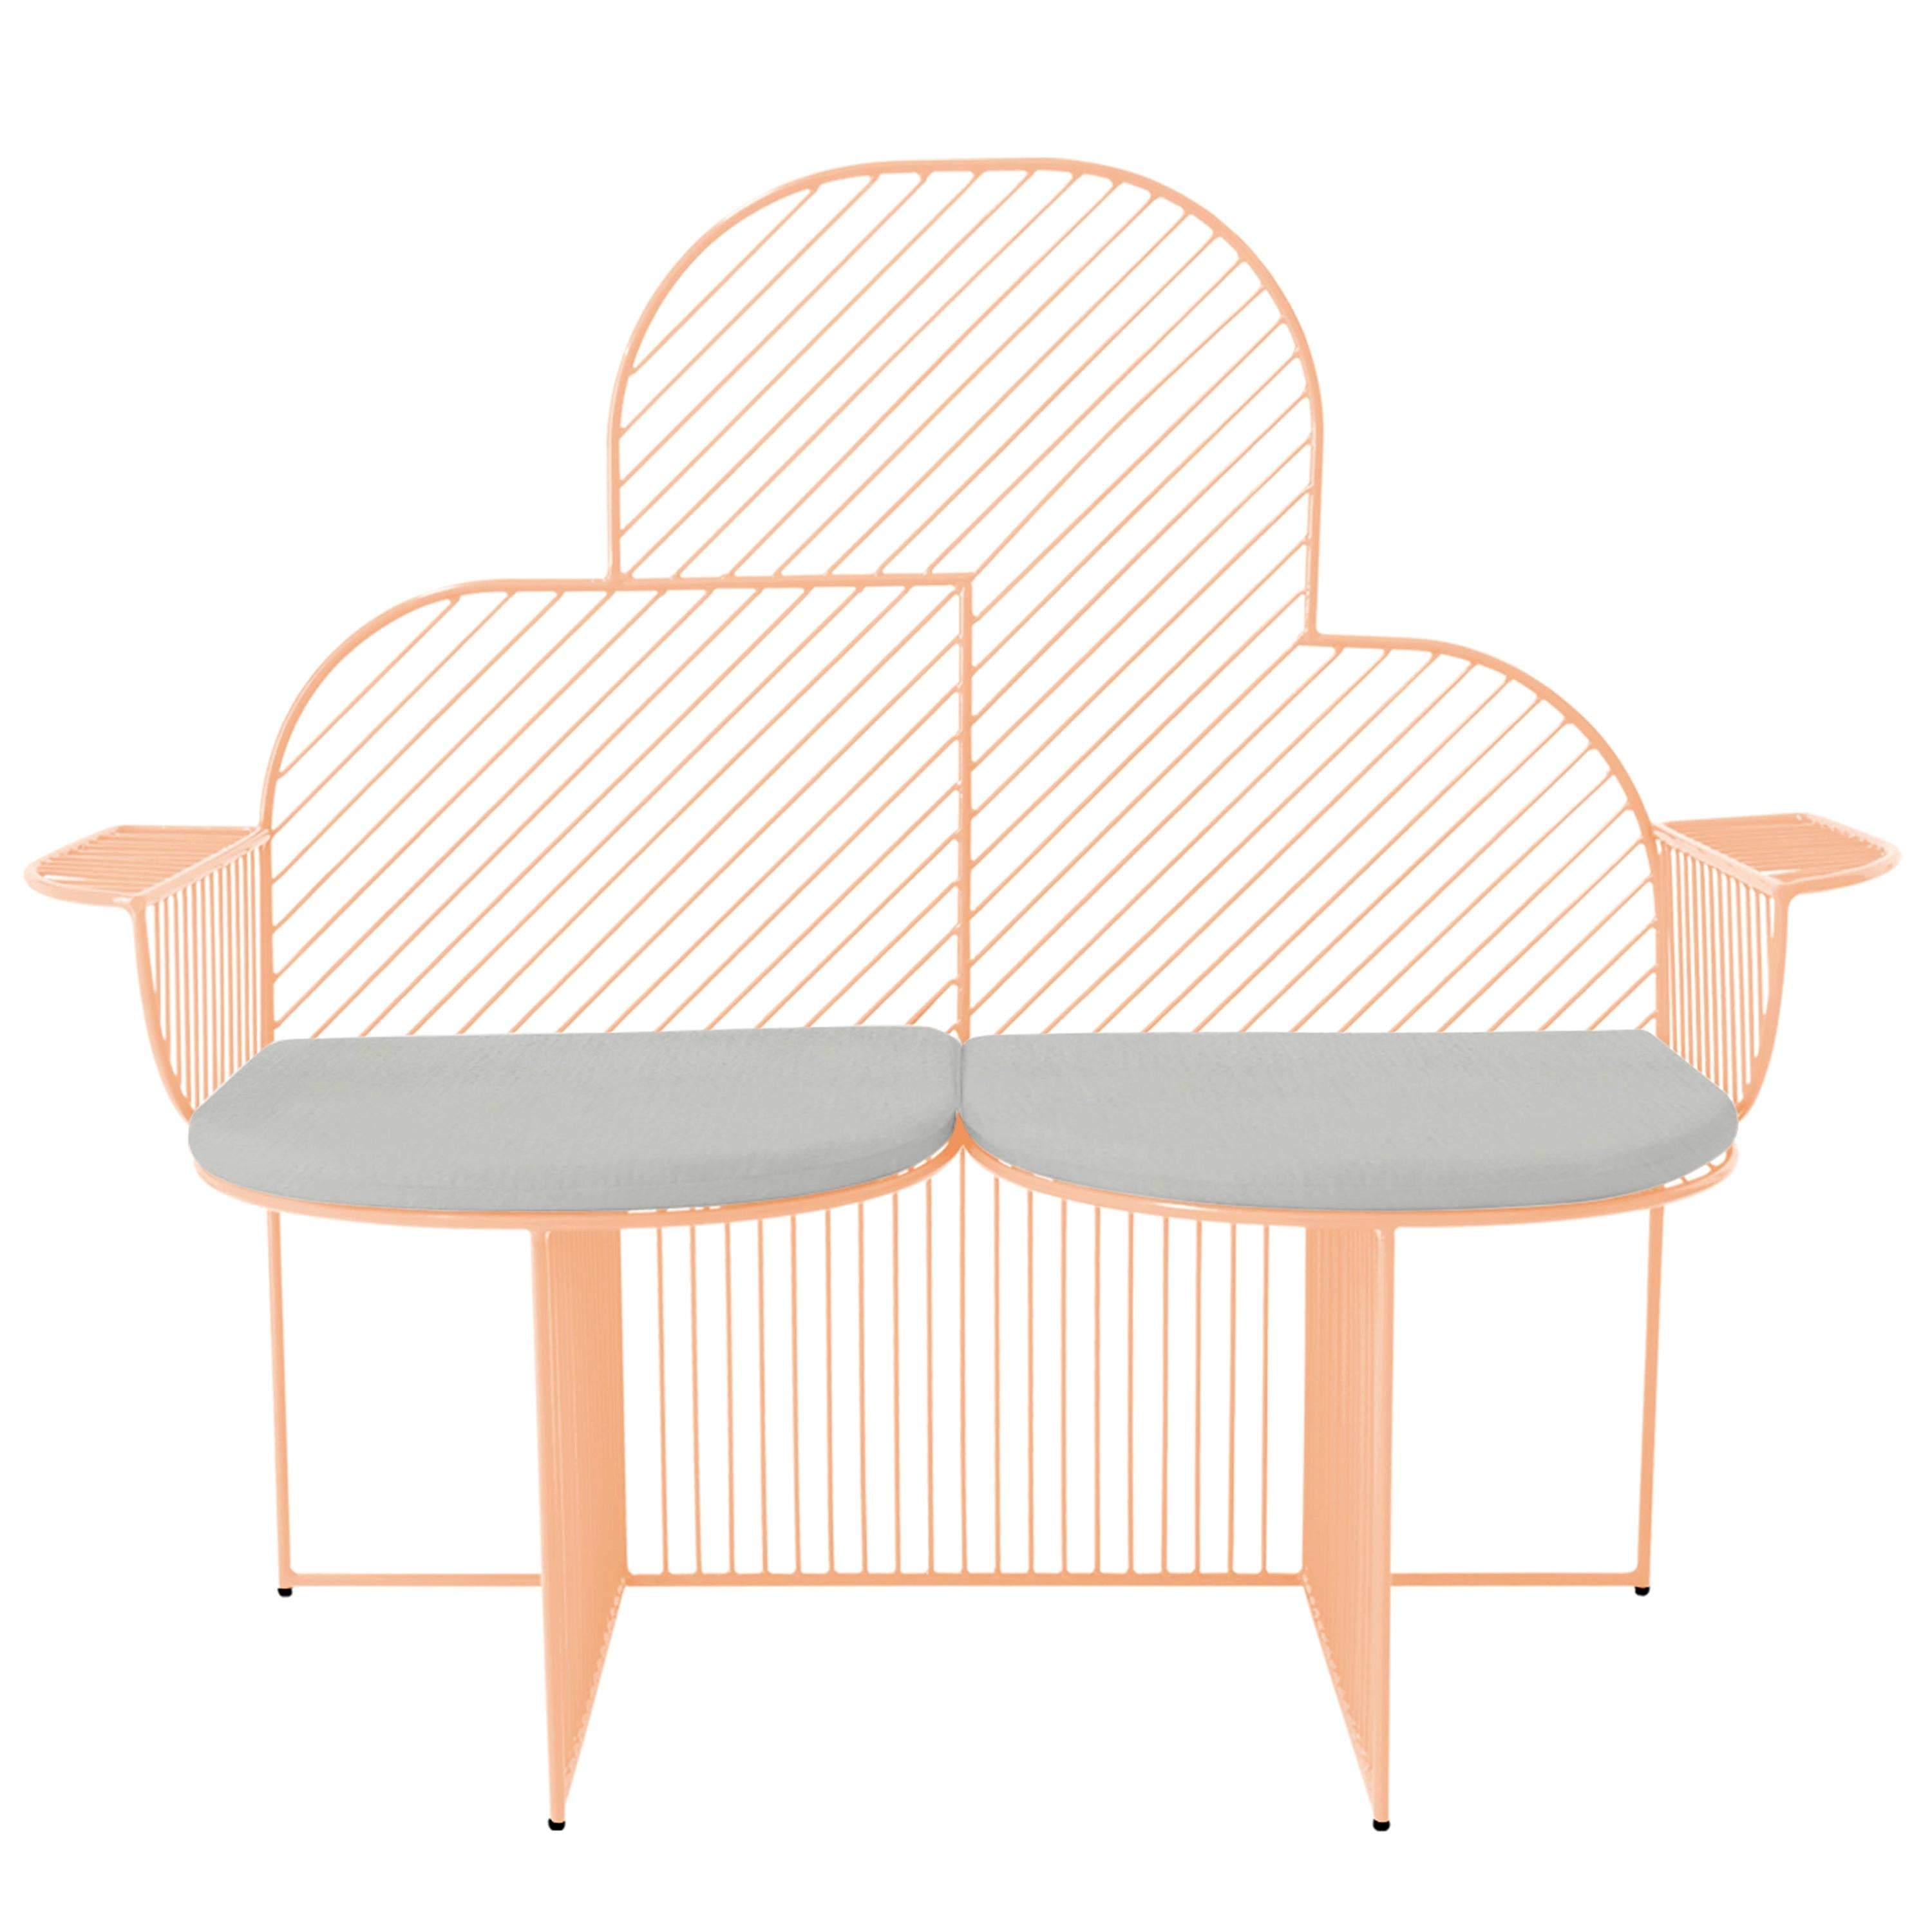 Modern Bench, Wire Cloud Bench by Bend Goods, Peachy Pink